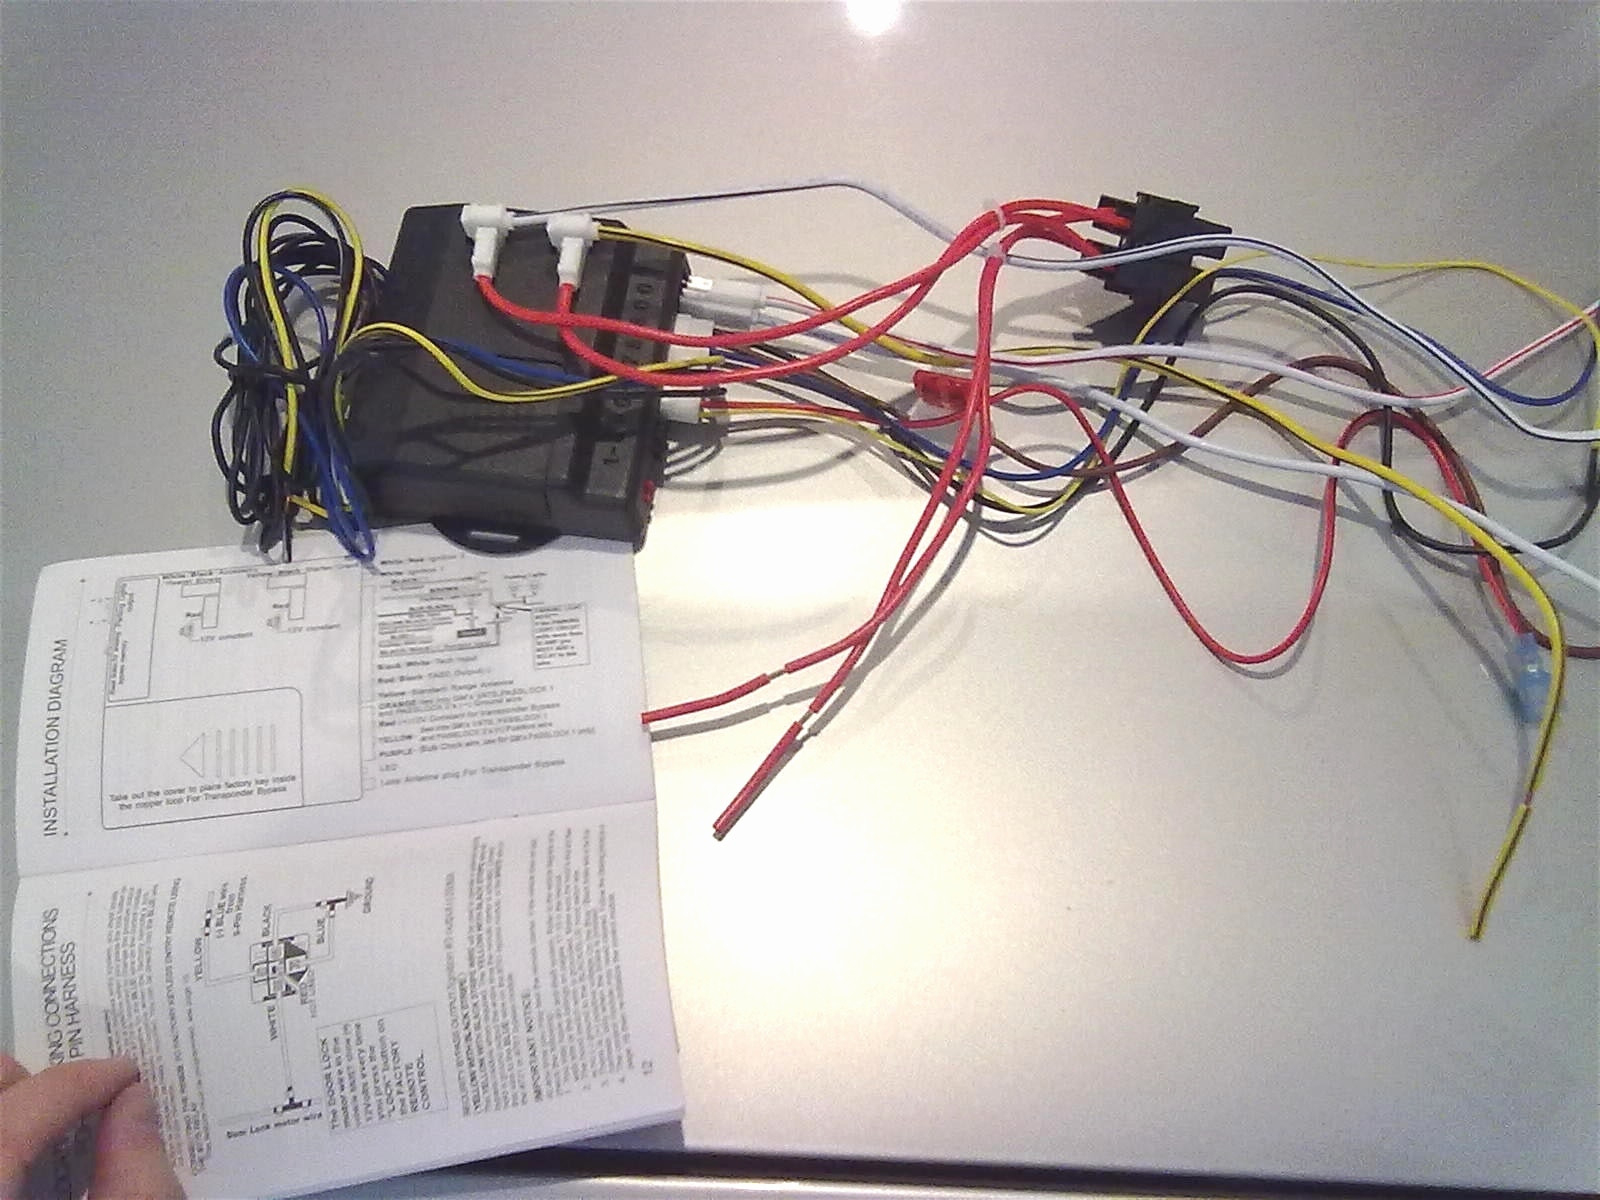 Bulldog Security Remote Starter Wiring Diagram - Zookastar - Bulldog Remote Start Wiring Diagram